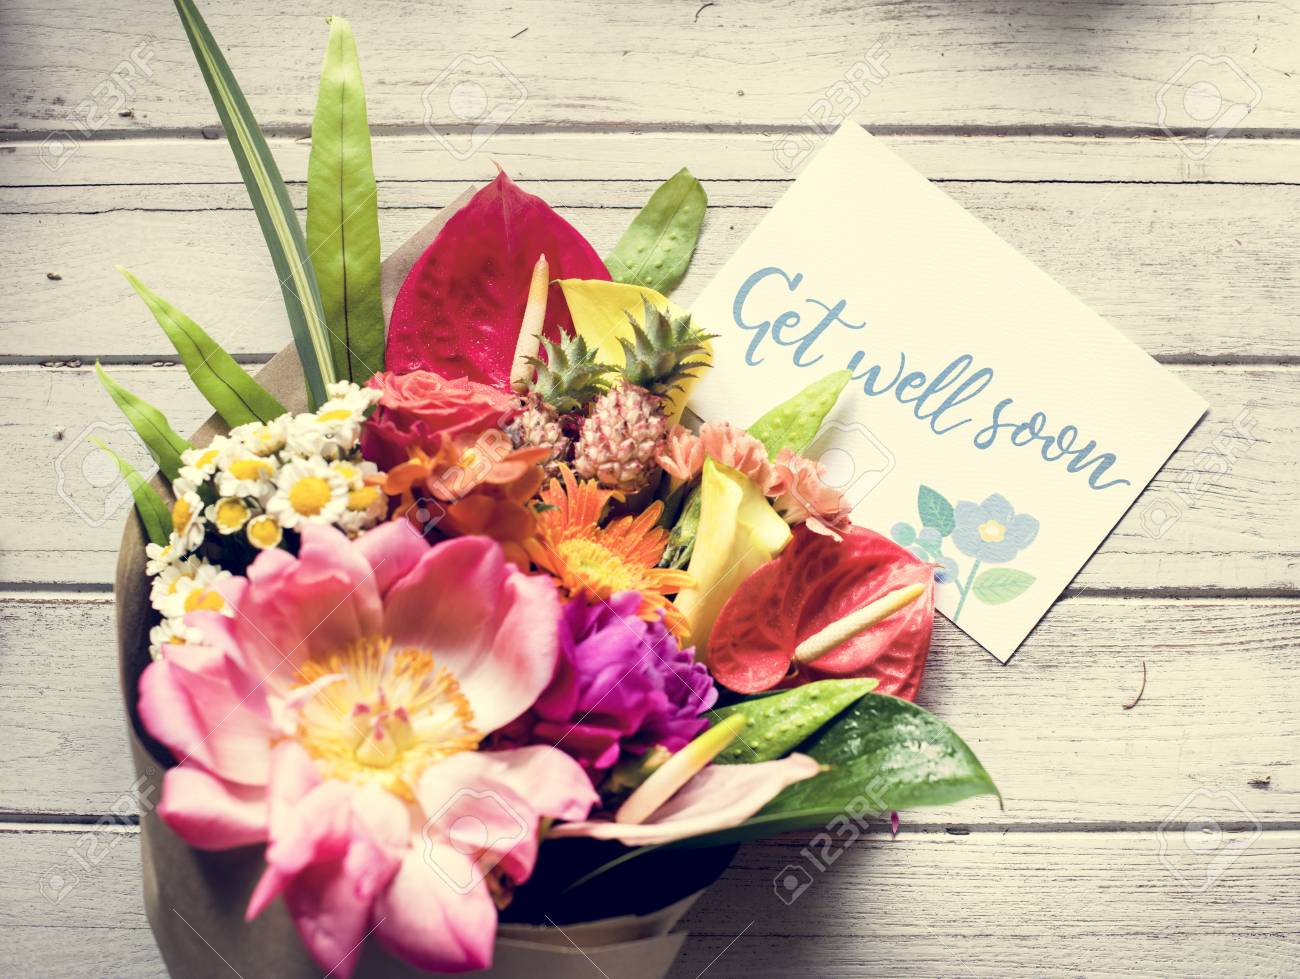 Get Well Soon Message With Bouquet Stock Photo, Picture And Royalty ...